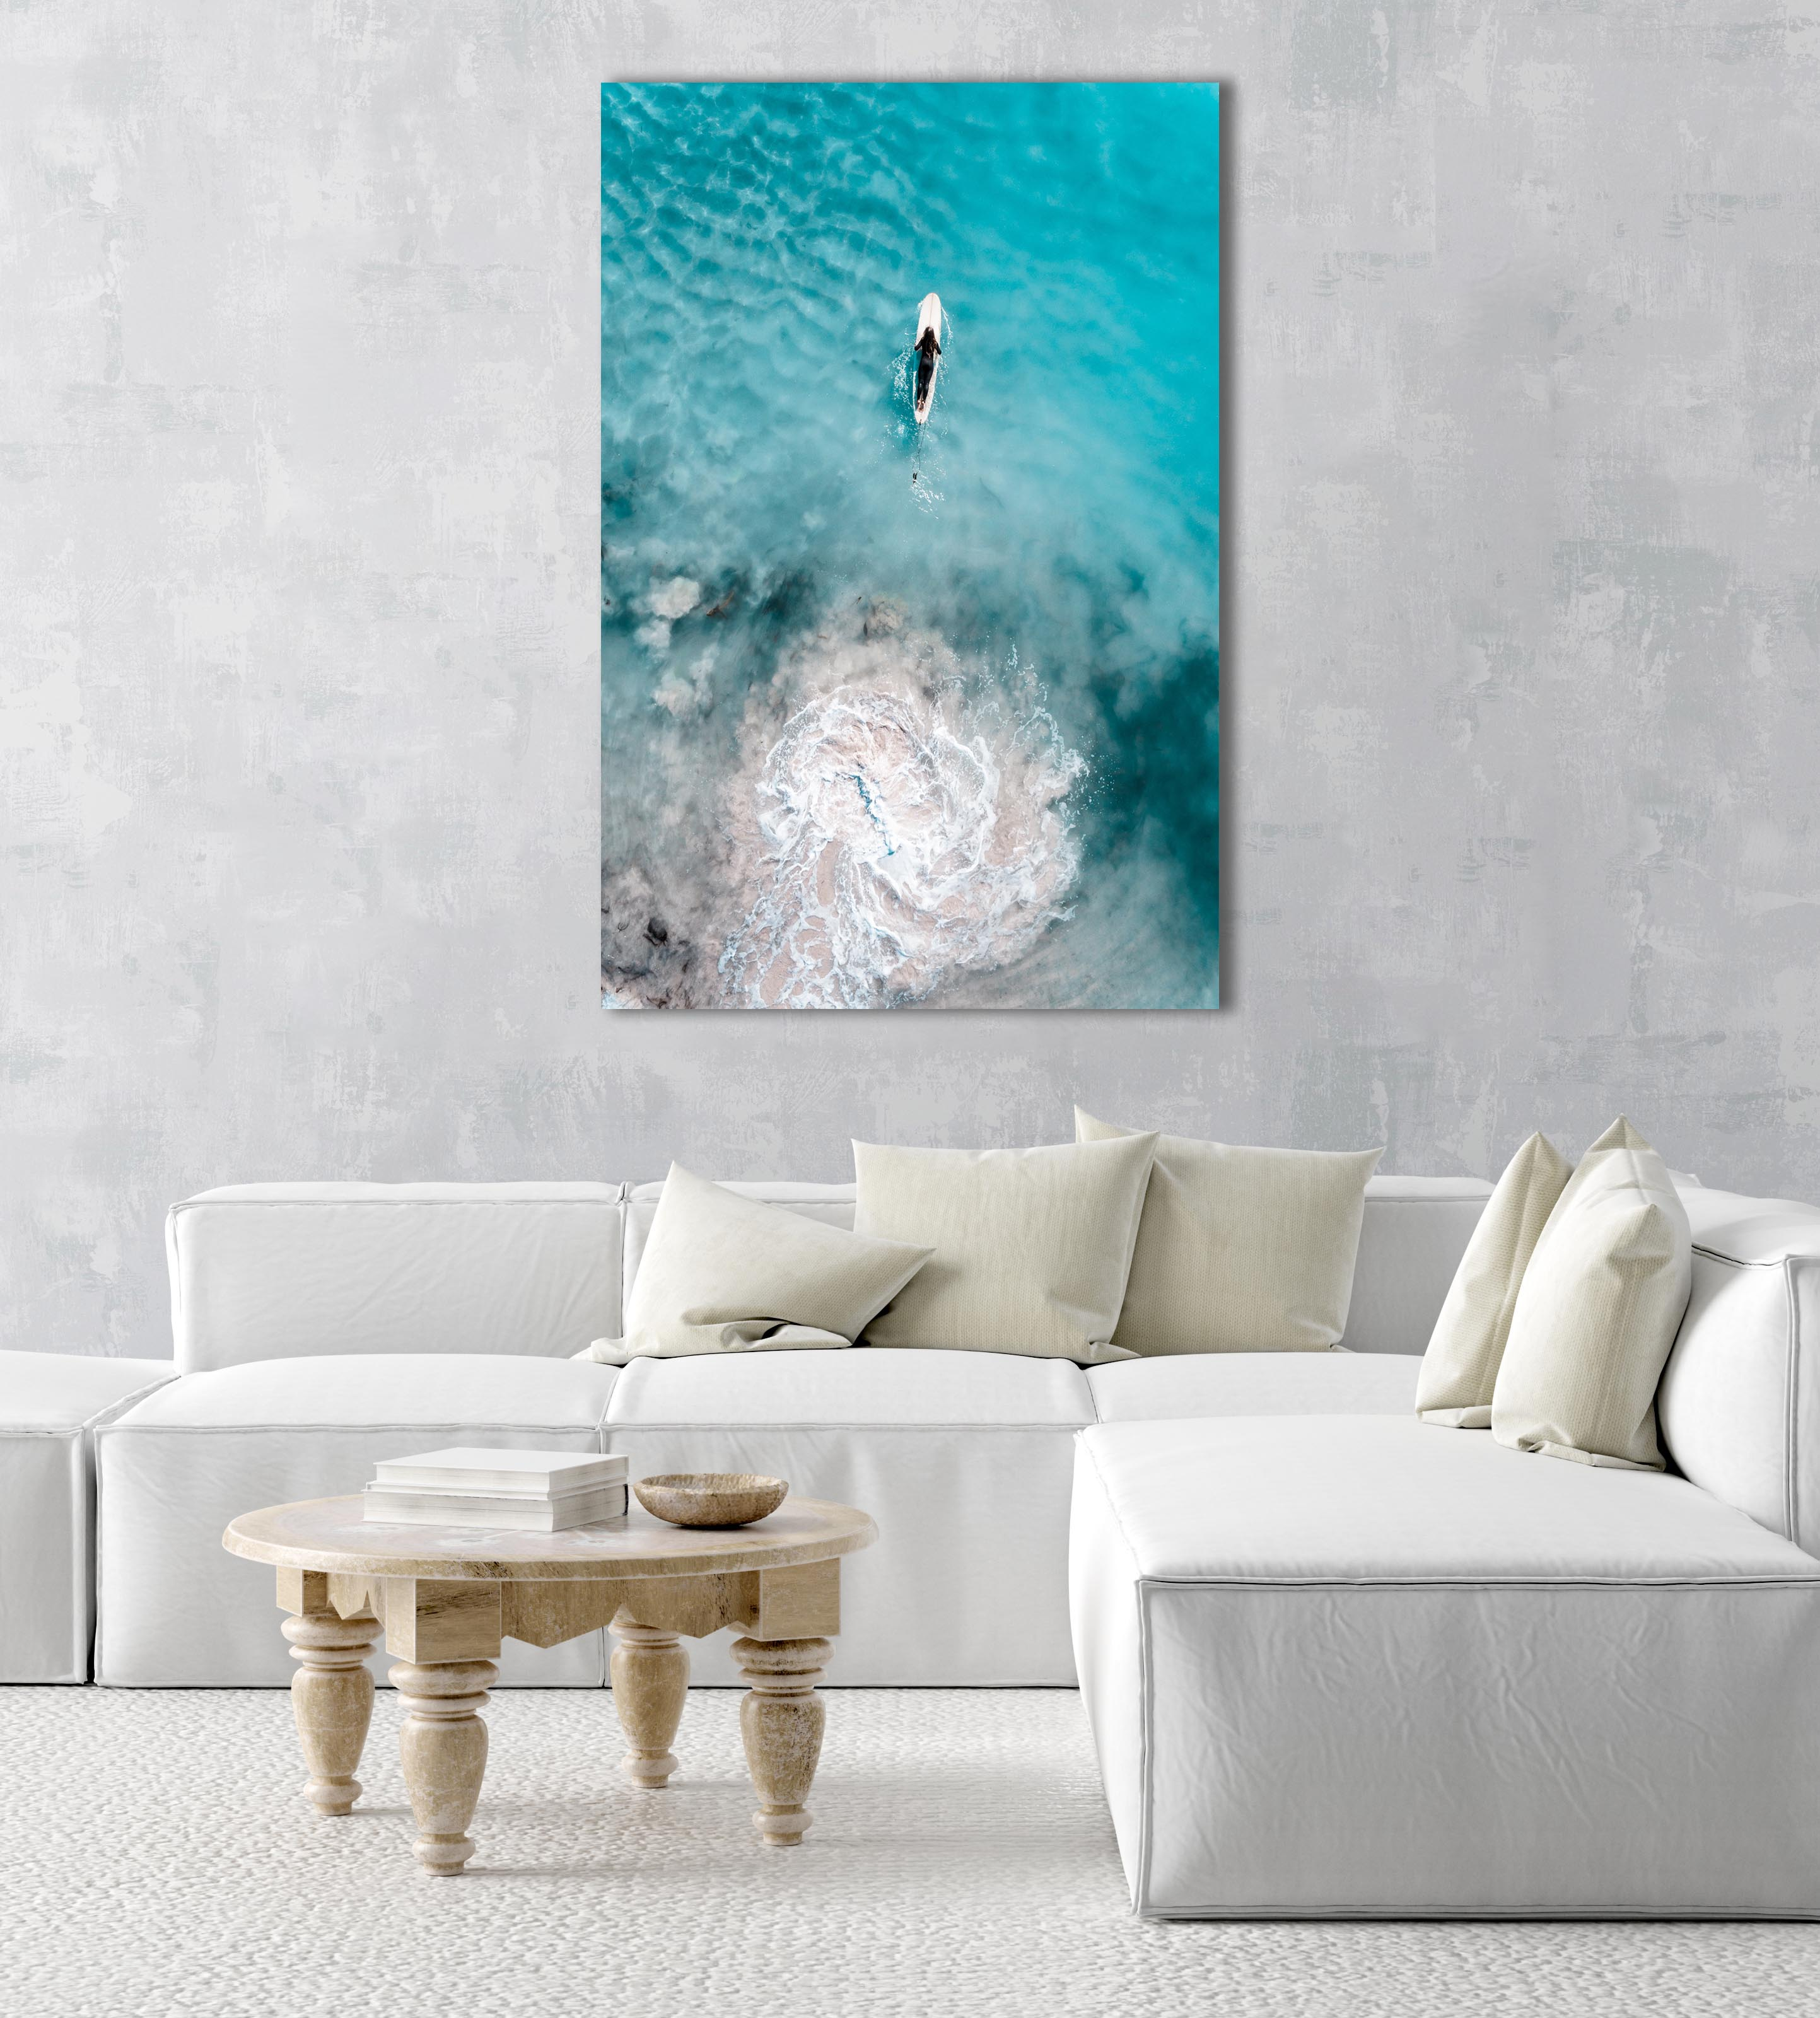 Aerial topdown of girl surfer in wetsuit paddling in blue water in a natural fine art frame